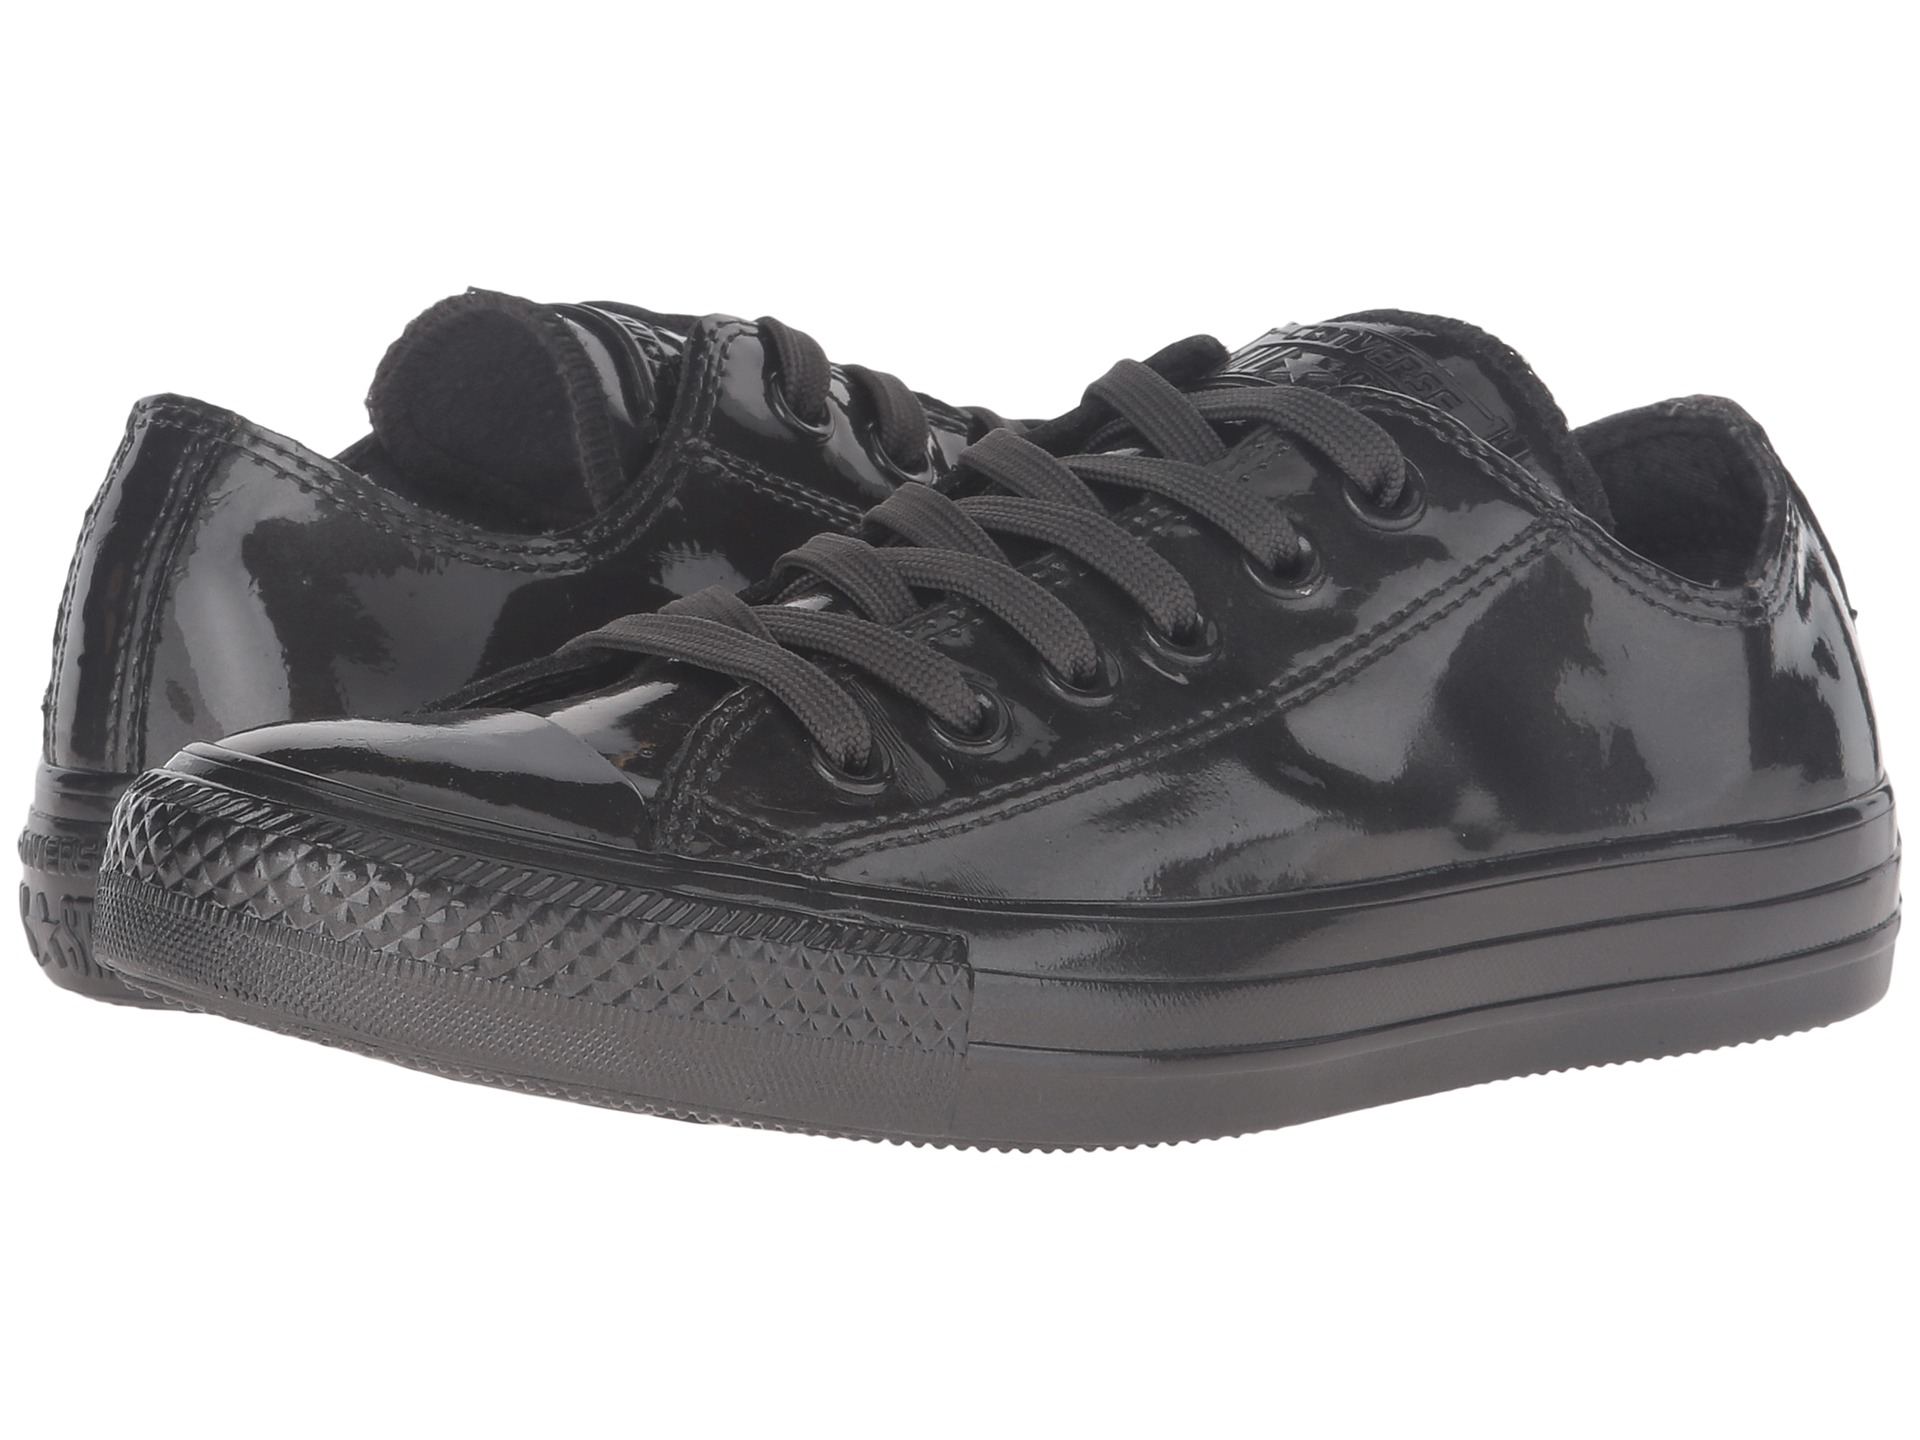 converse all star rubber reviews